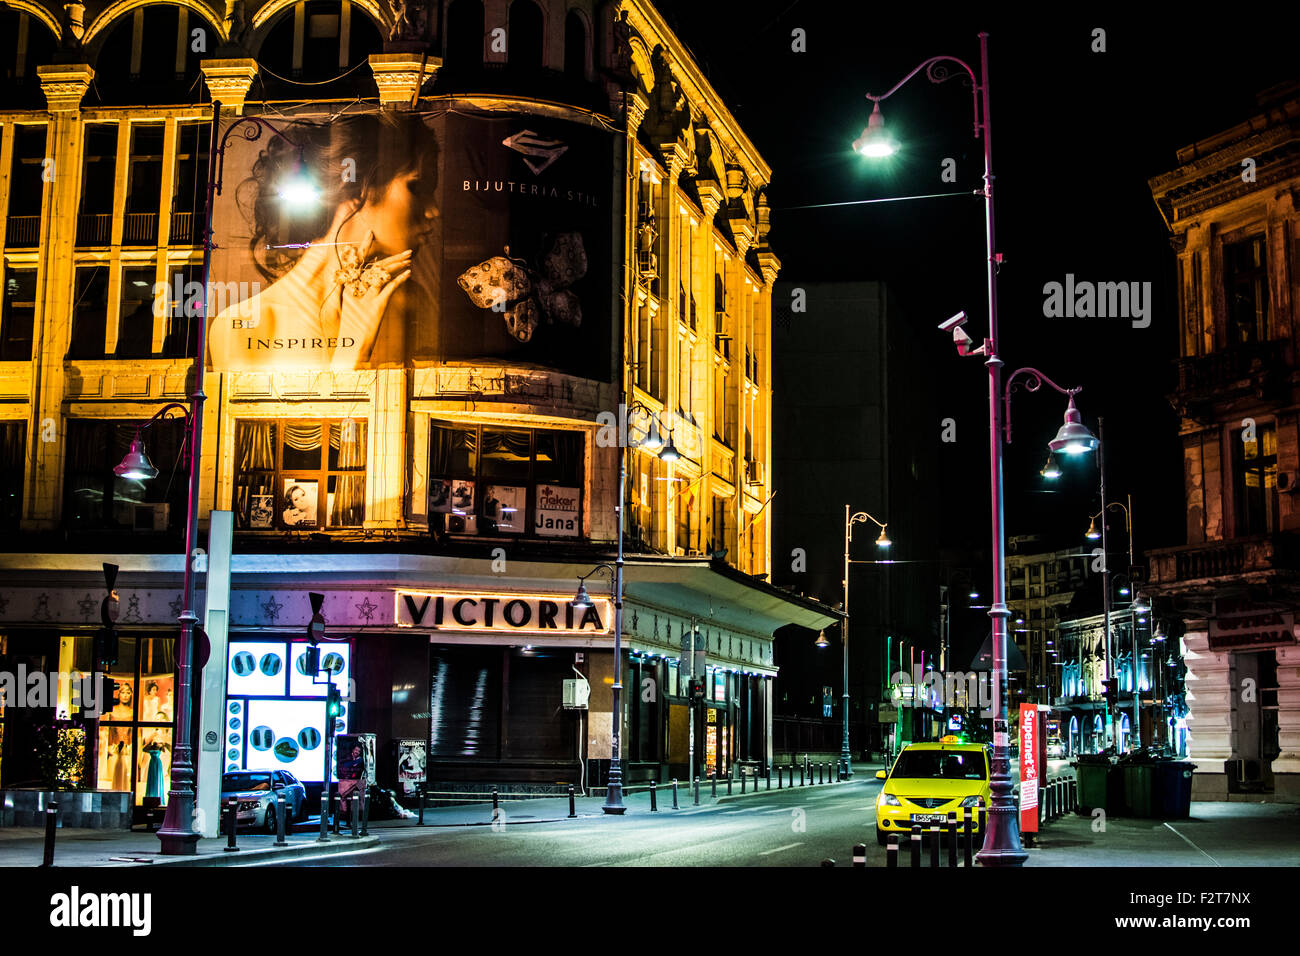 Old Victoria Commercial Center - Calea Victoriei, Bucharest, Romania - Stock Image